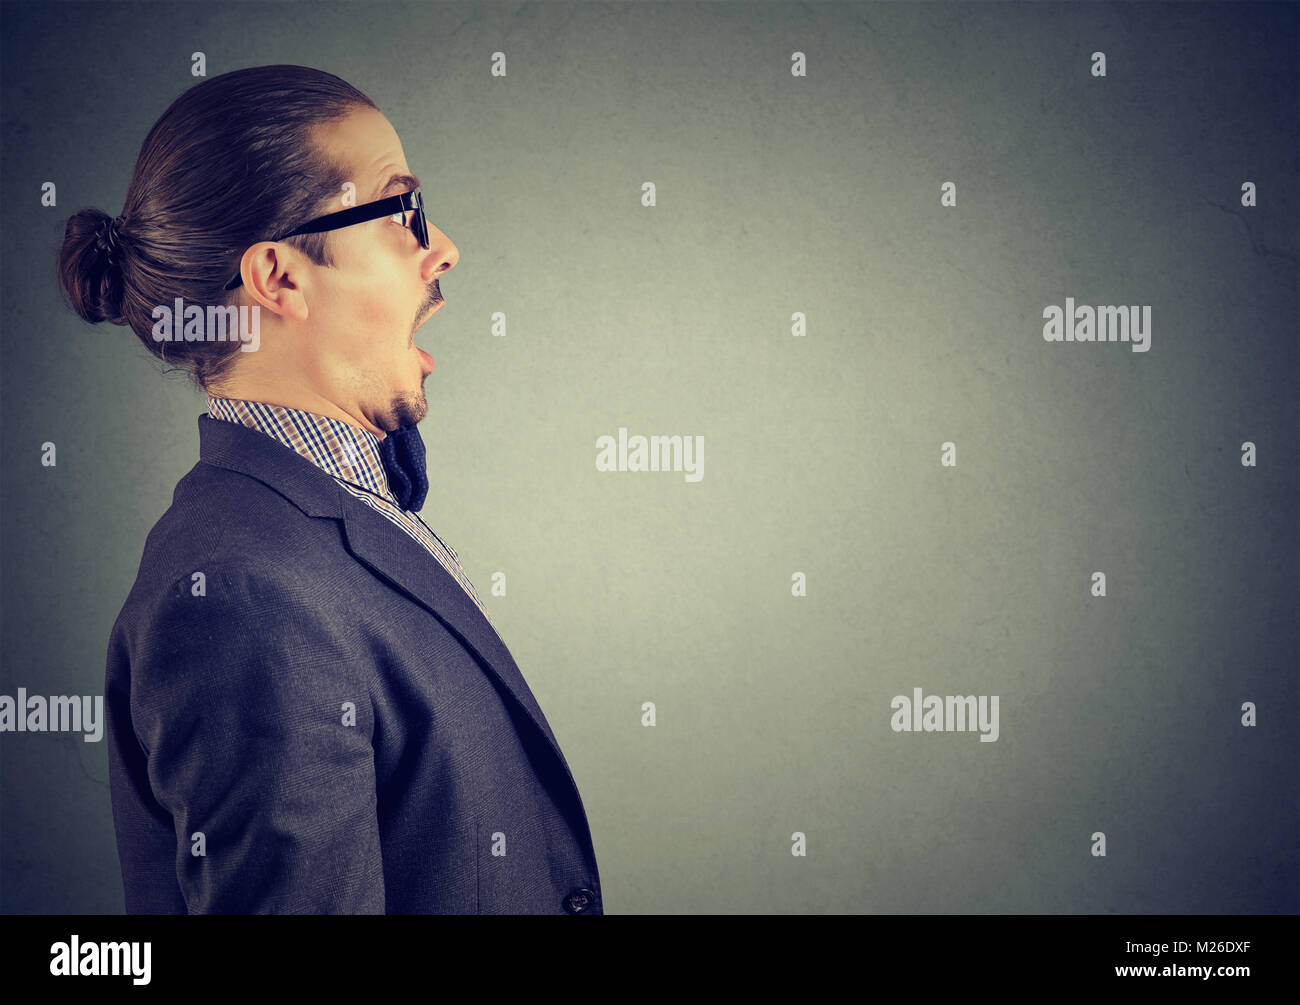 Side view of man in suit standing with mouth opened on gray looking amazed and shocked. - Stock Image